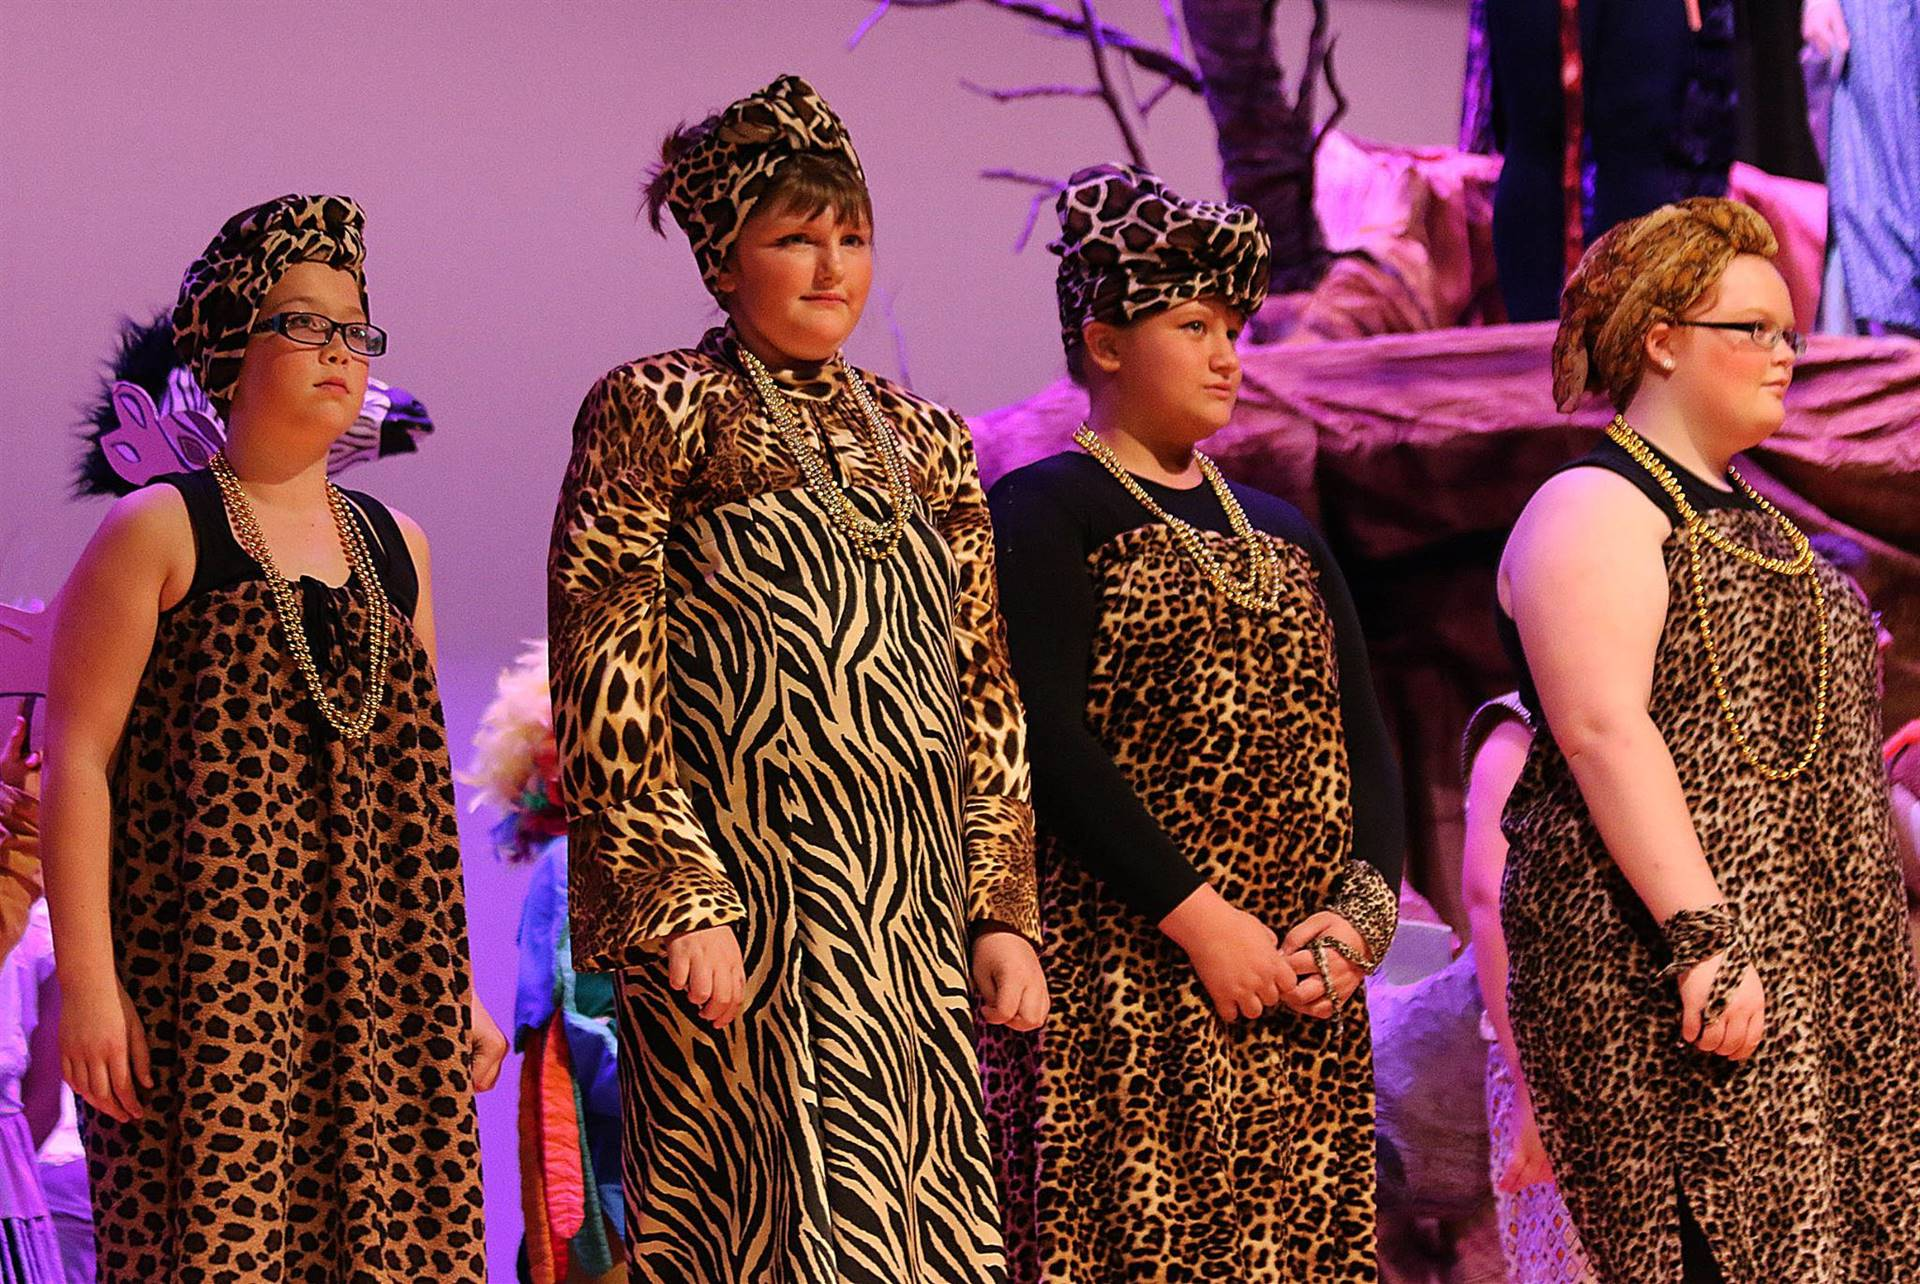 Four students in tribal costumes during the Lion King play